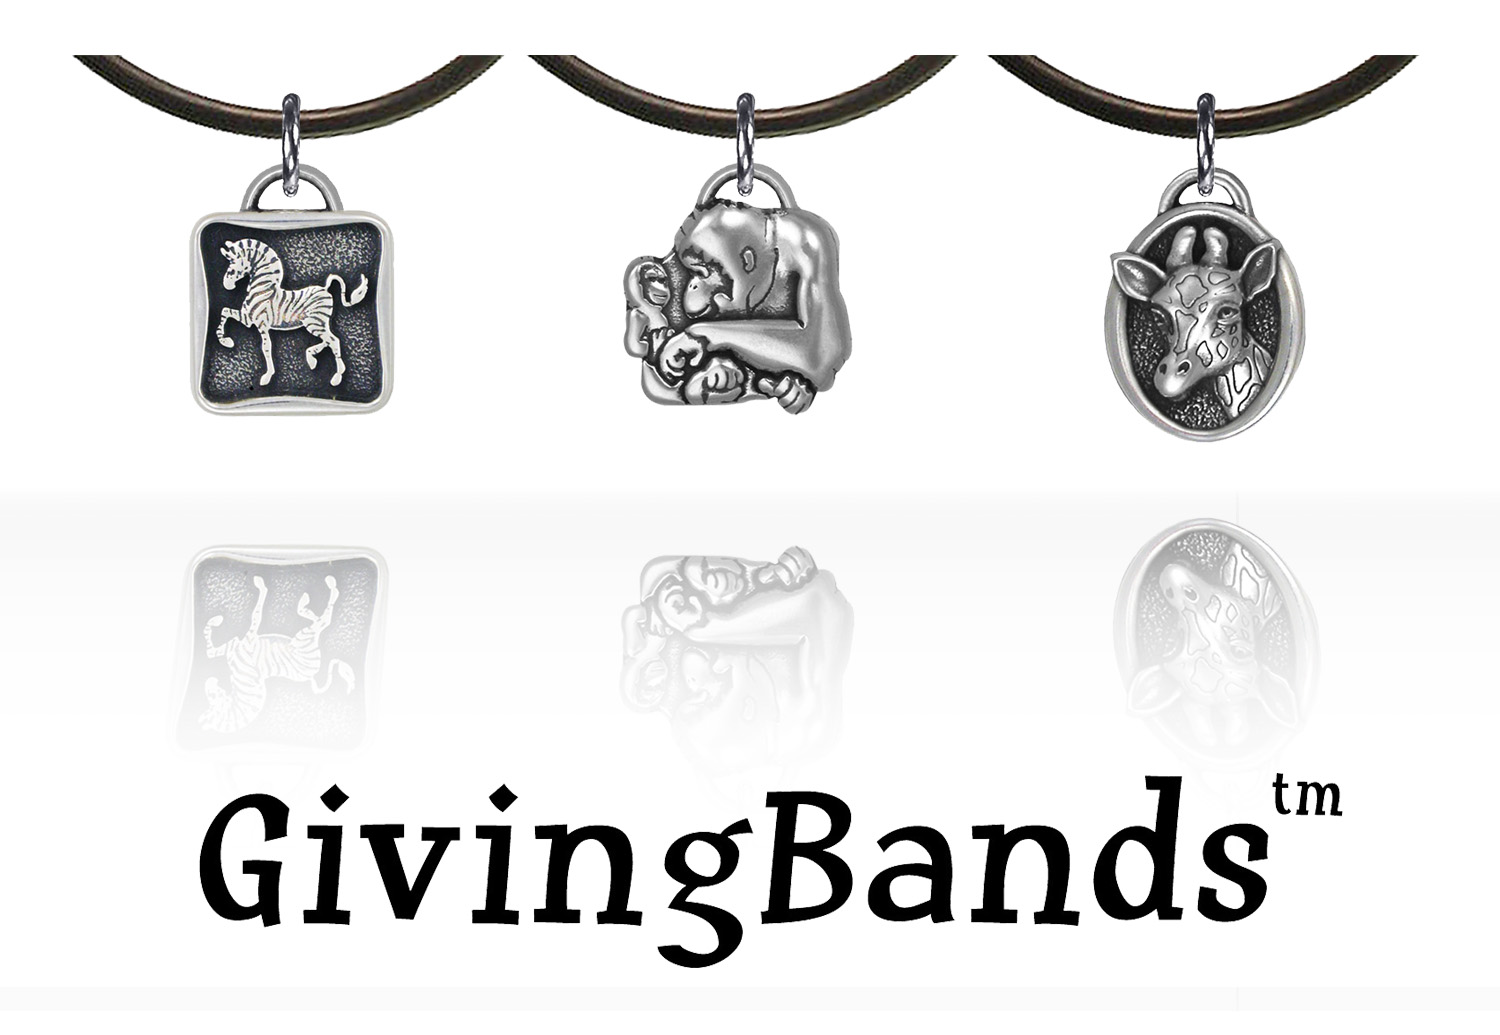 Phx Zoo GivingBands collage w reflection & GB title